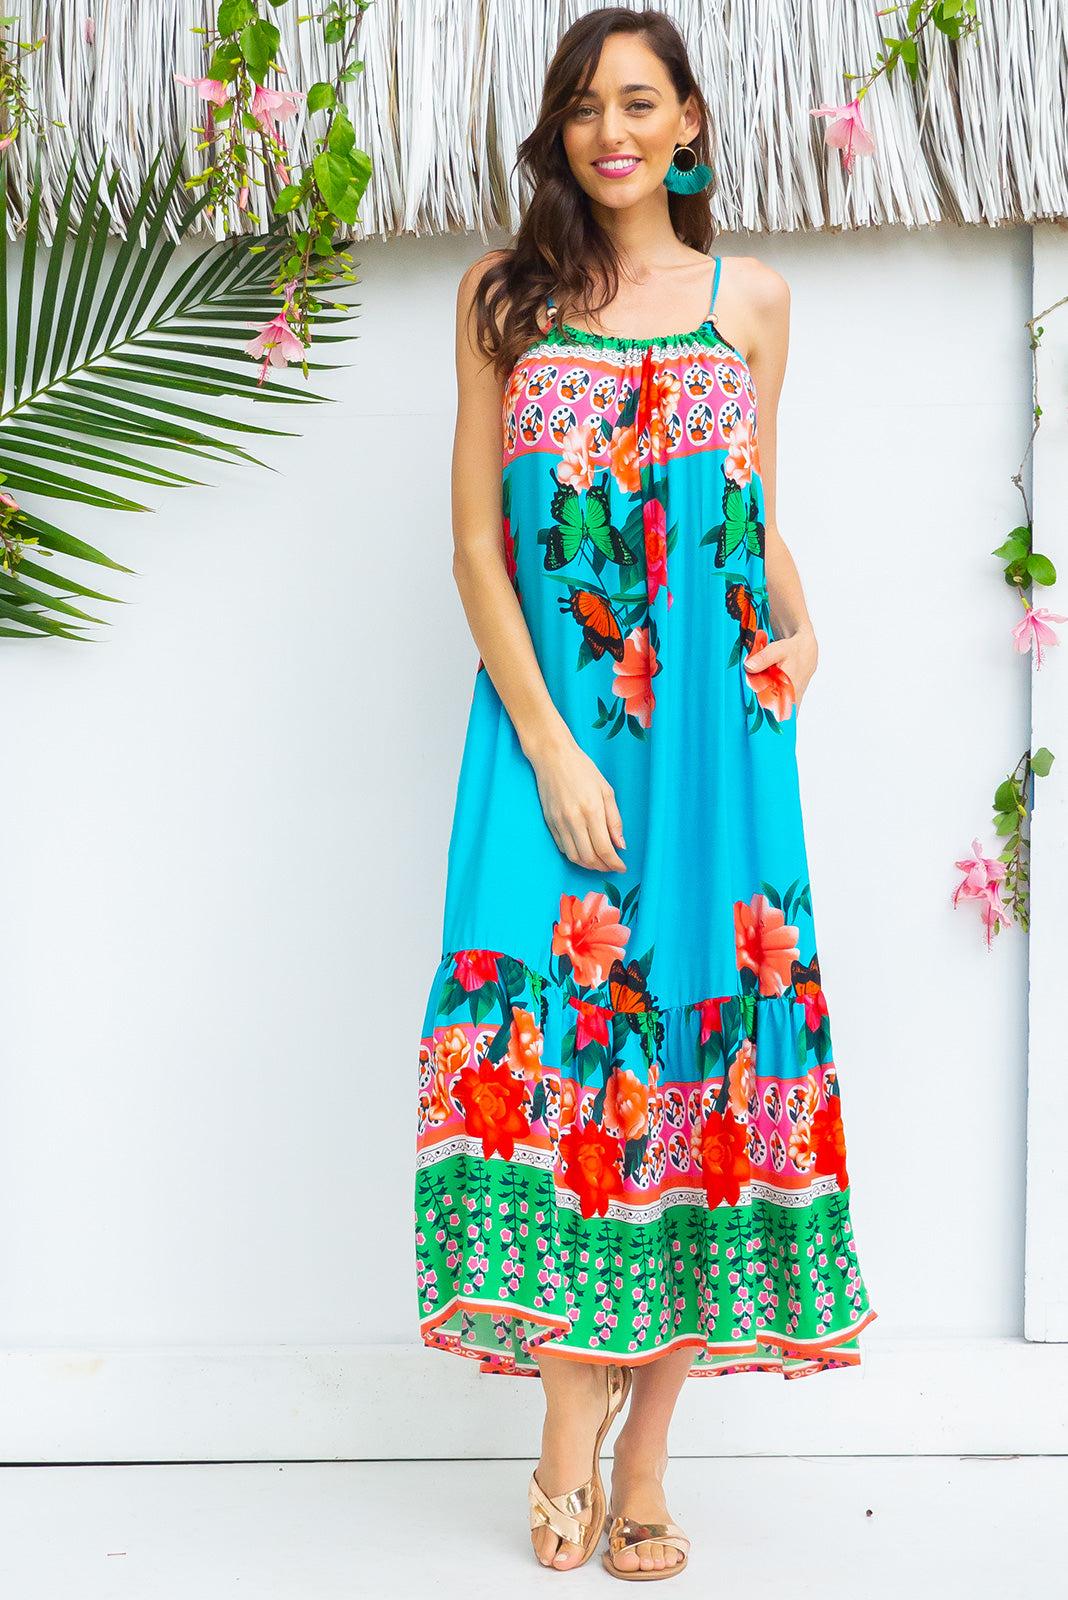 Soleil Rosetti Dress Maxi length rayon tiered dress with a adjustable neckline, side pockets in a stunning sky blue colour and roses inspired border print